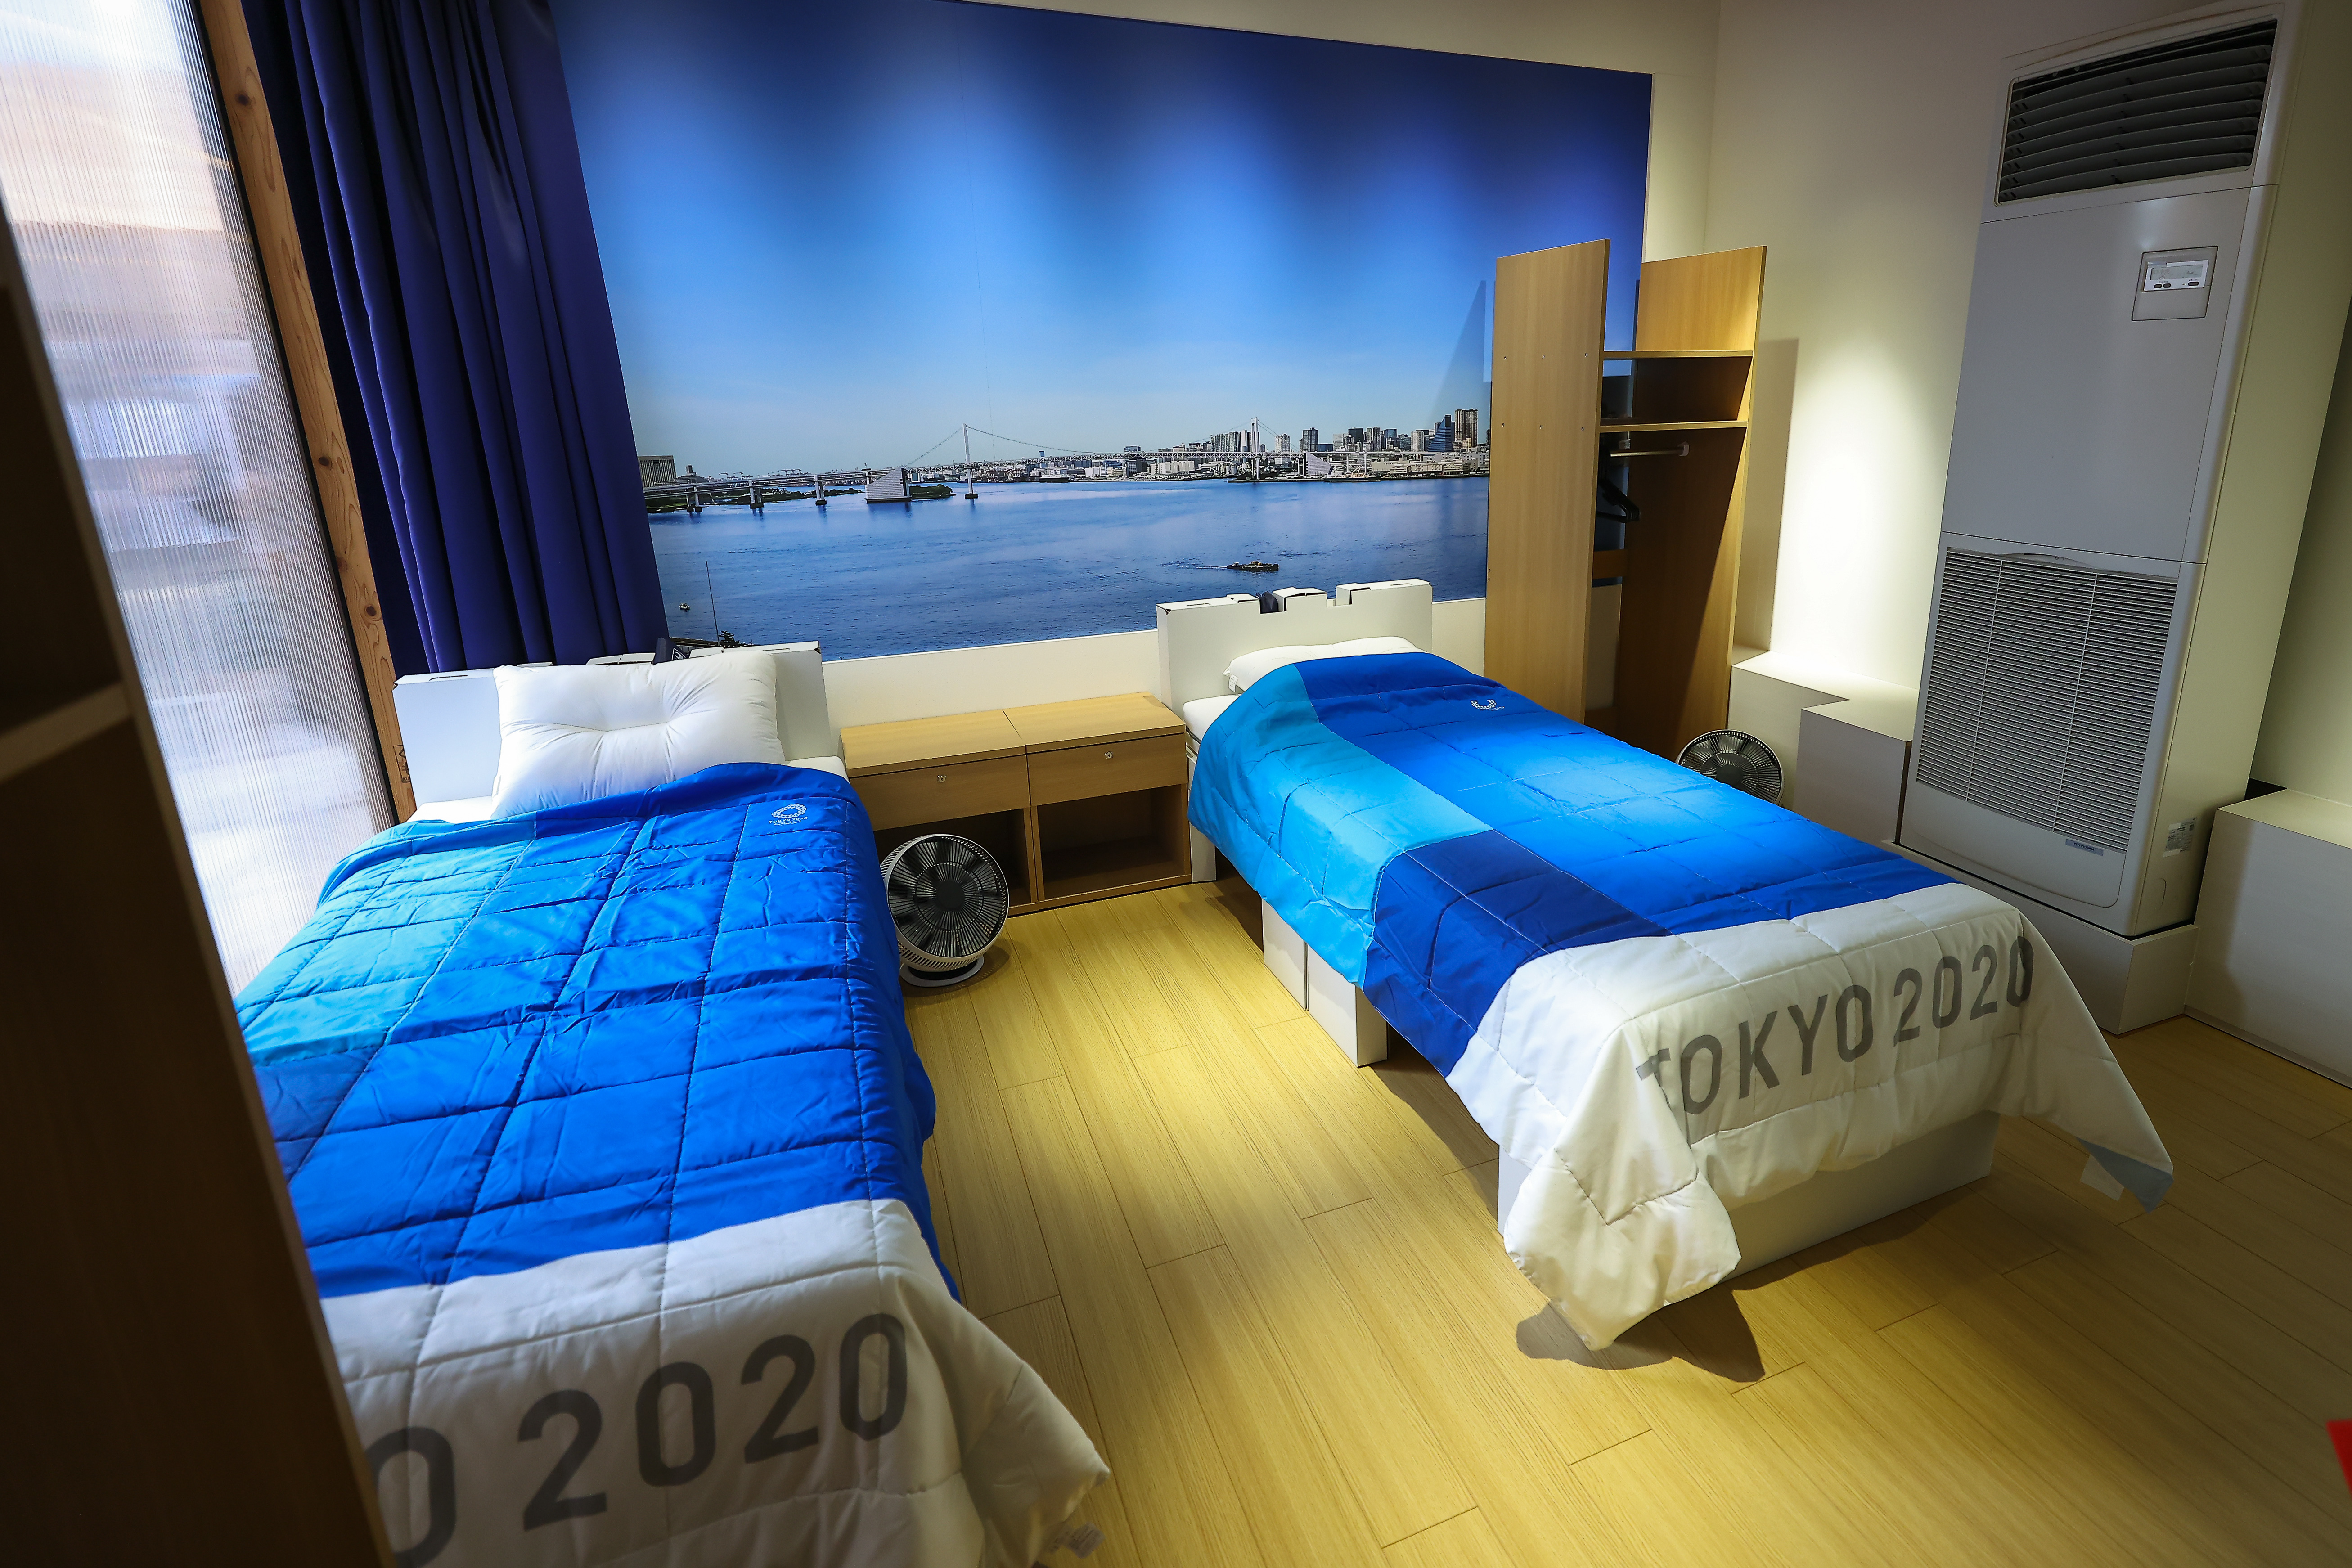 The Olympic village beds in Tokyo. (PA Images)